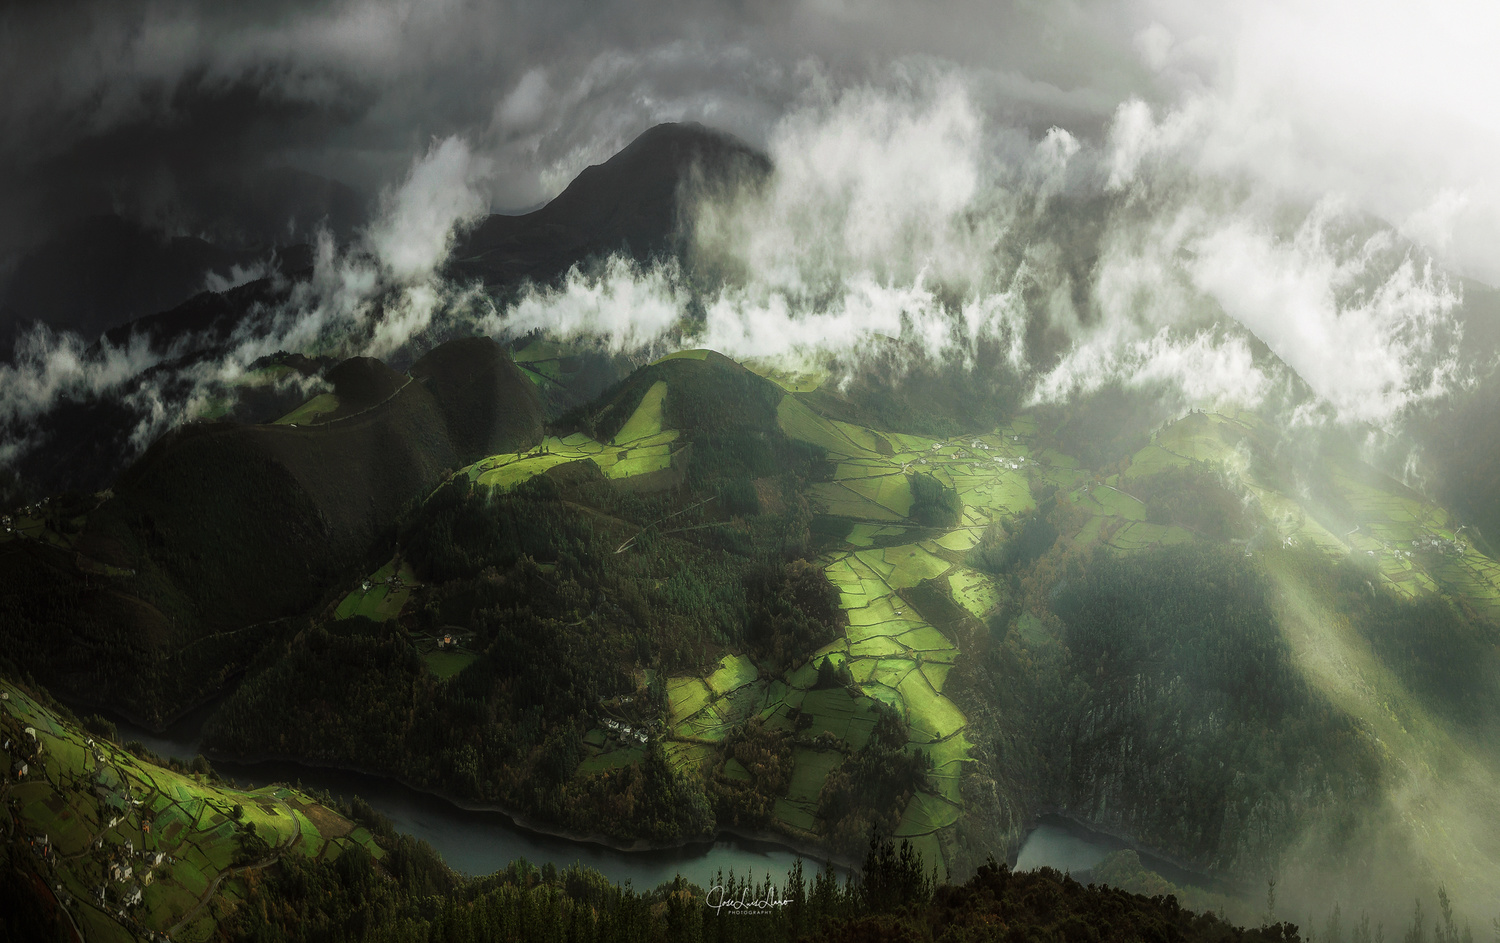 Misty valleys by Jose Luis Llano